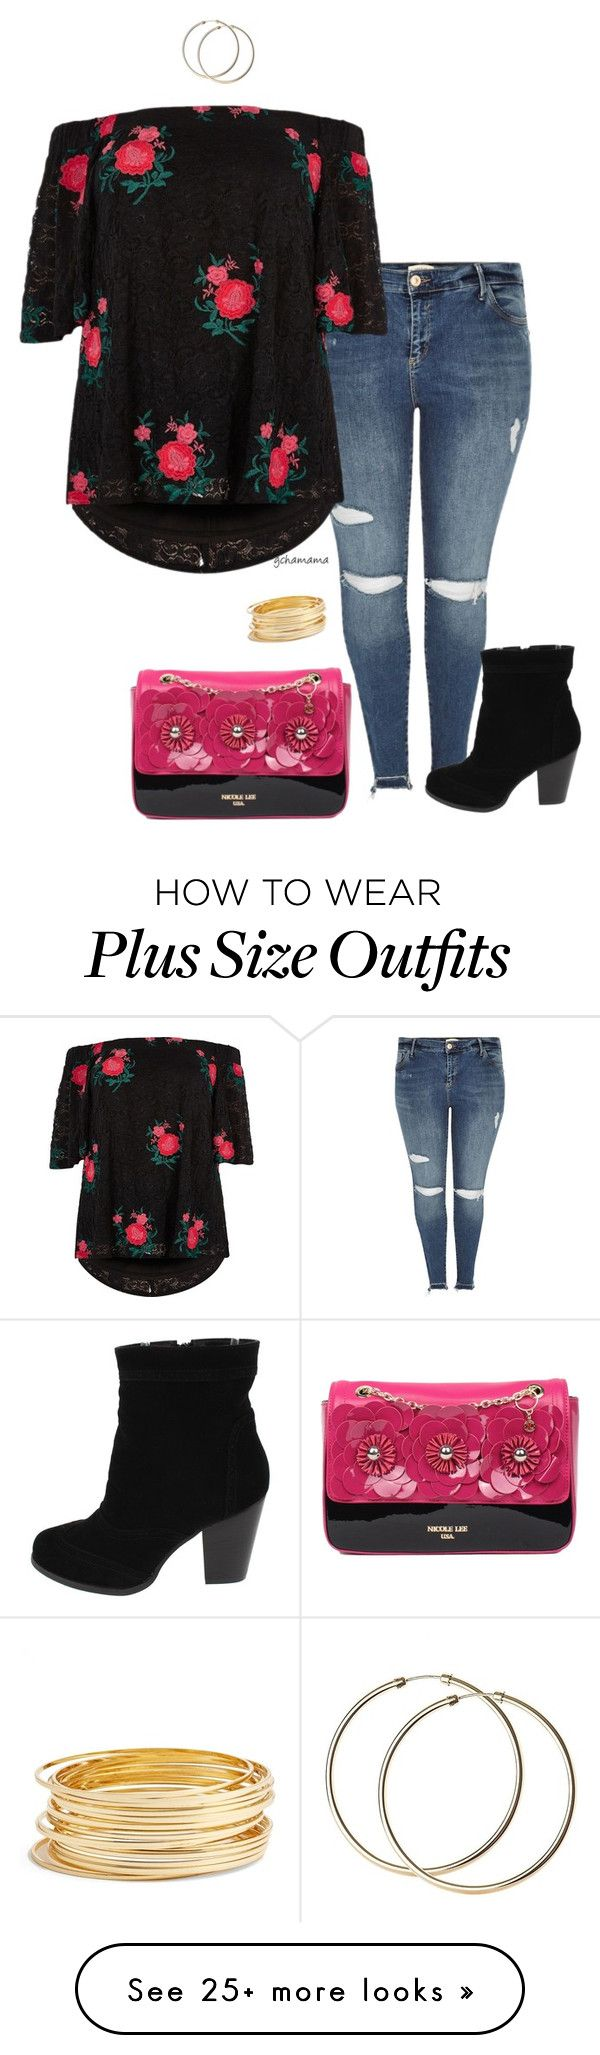 """Gypsy Rose- plus size"" by gchamama on Polyvore featuring River Island and Argento Vivo"